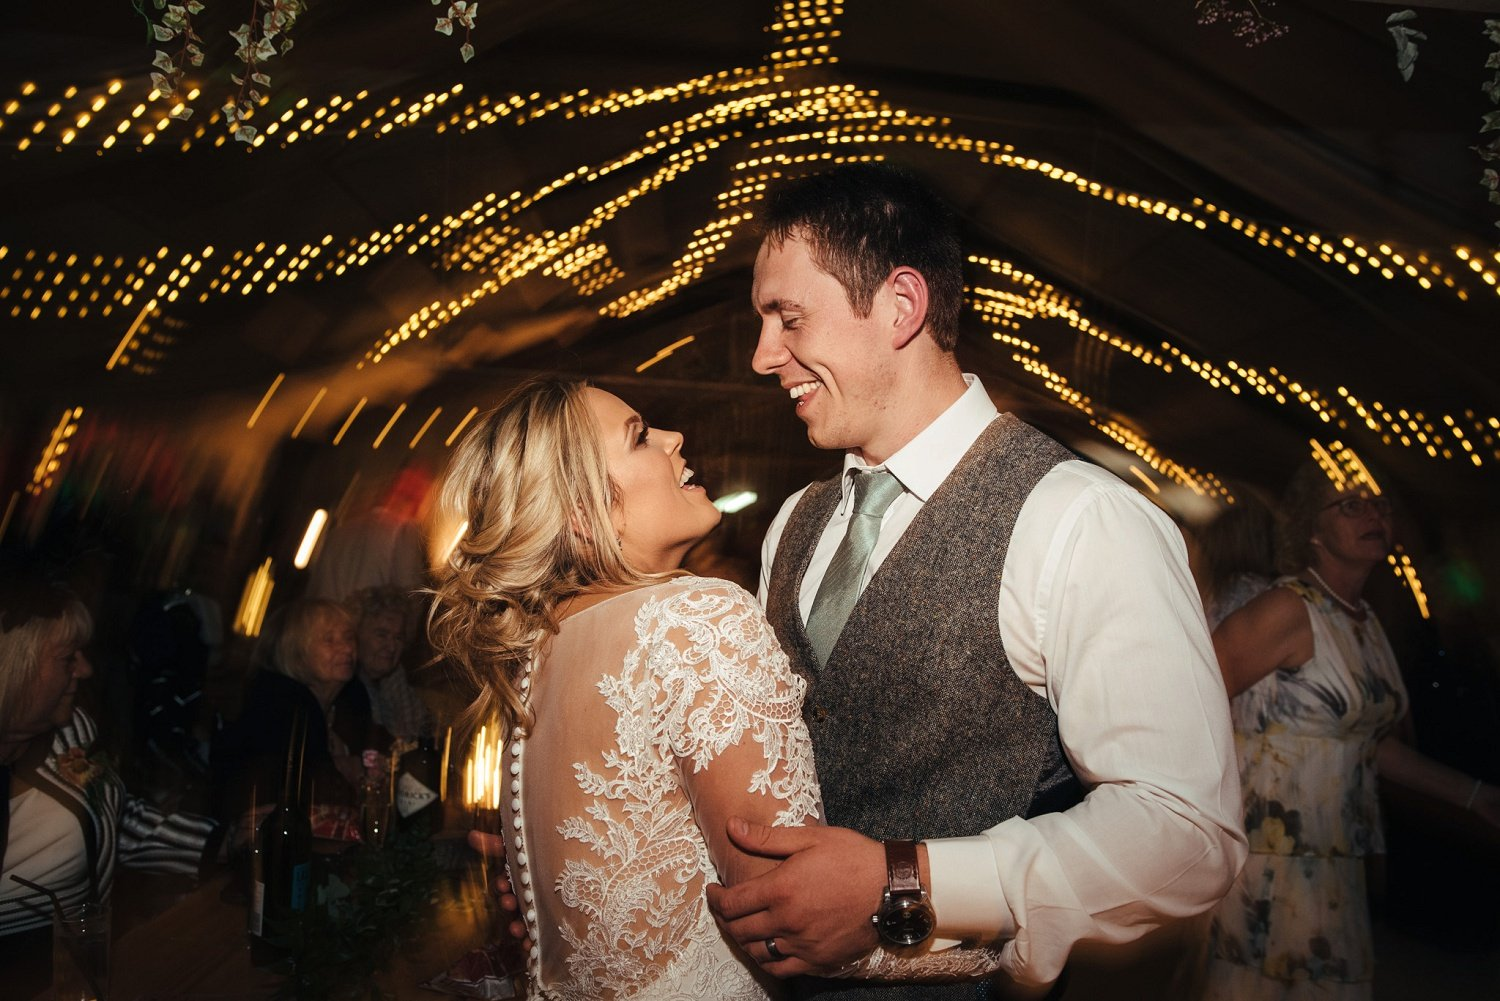 Bride and groom dance together under the fairy lights at Redbank barn in Herefordshire